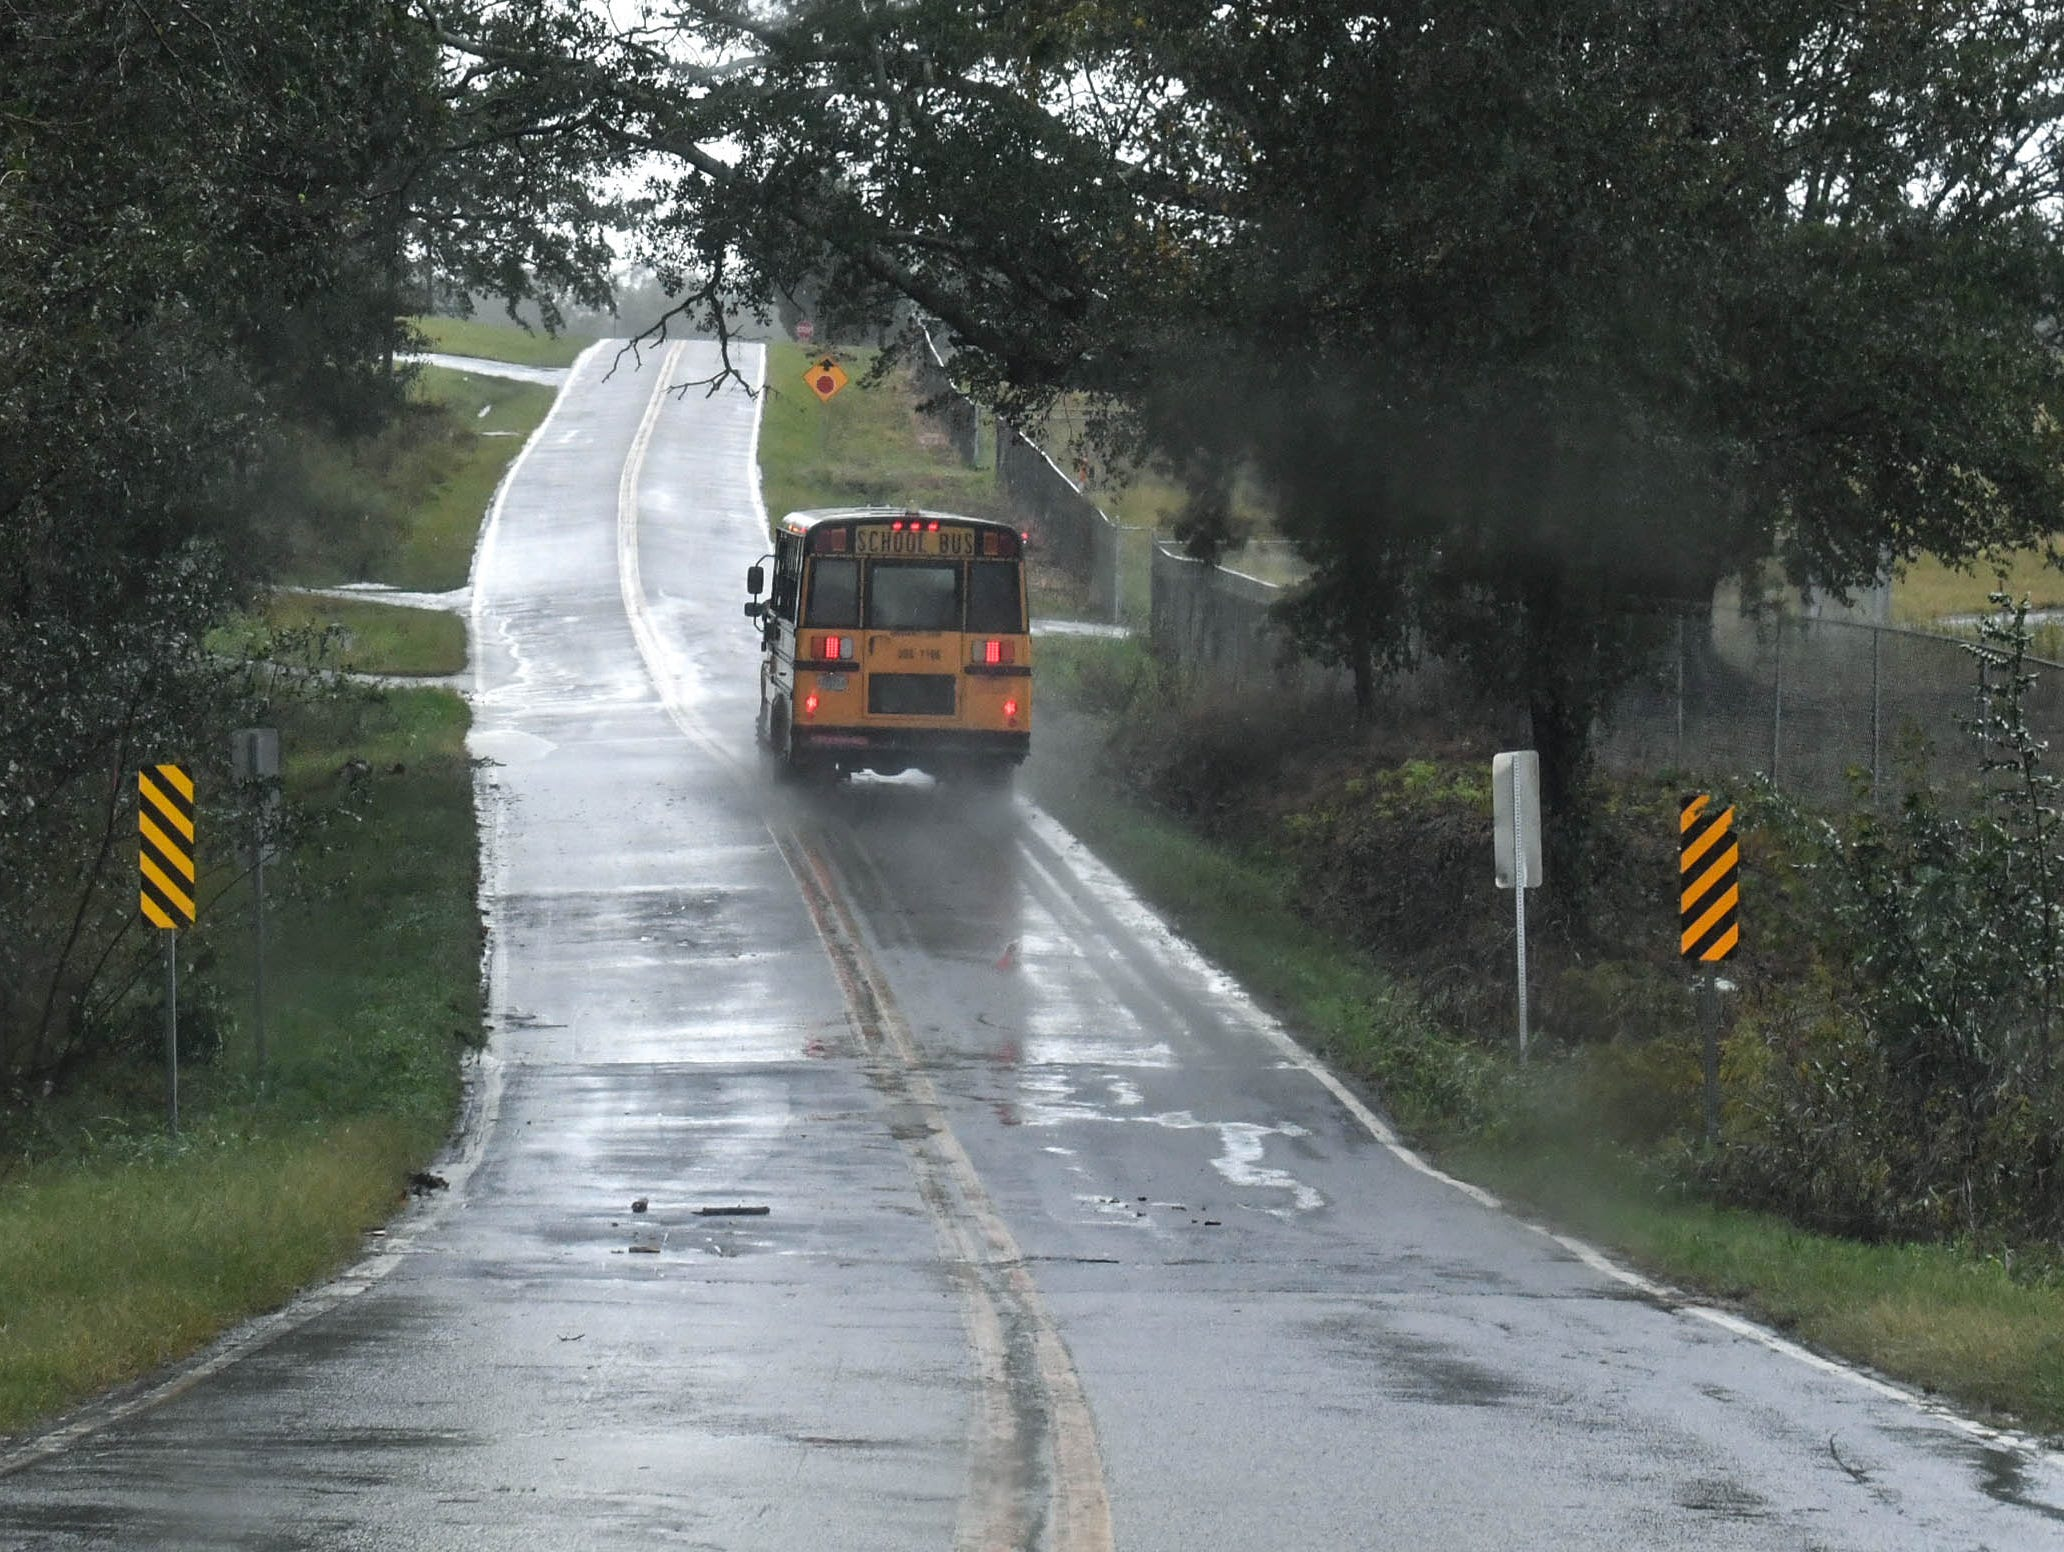 A school bus bringing Crescent High School students drives along Good Hope Church Road in Iva on Thursday. Anderson School District Three had a two-hour delay due to  the rain from Hurricane Michael.